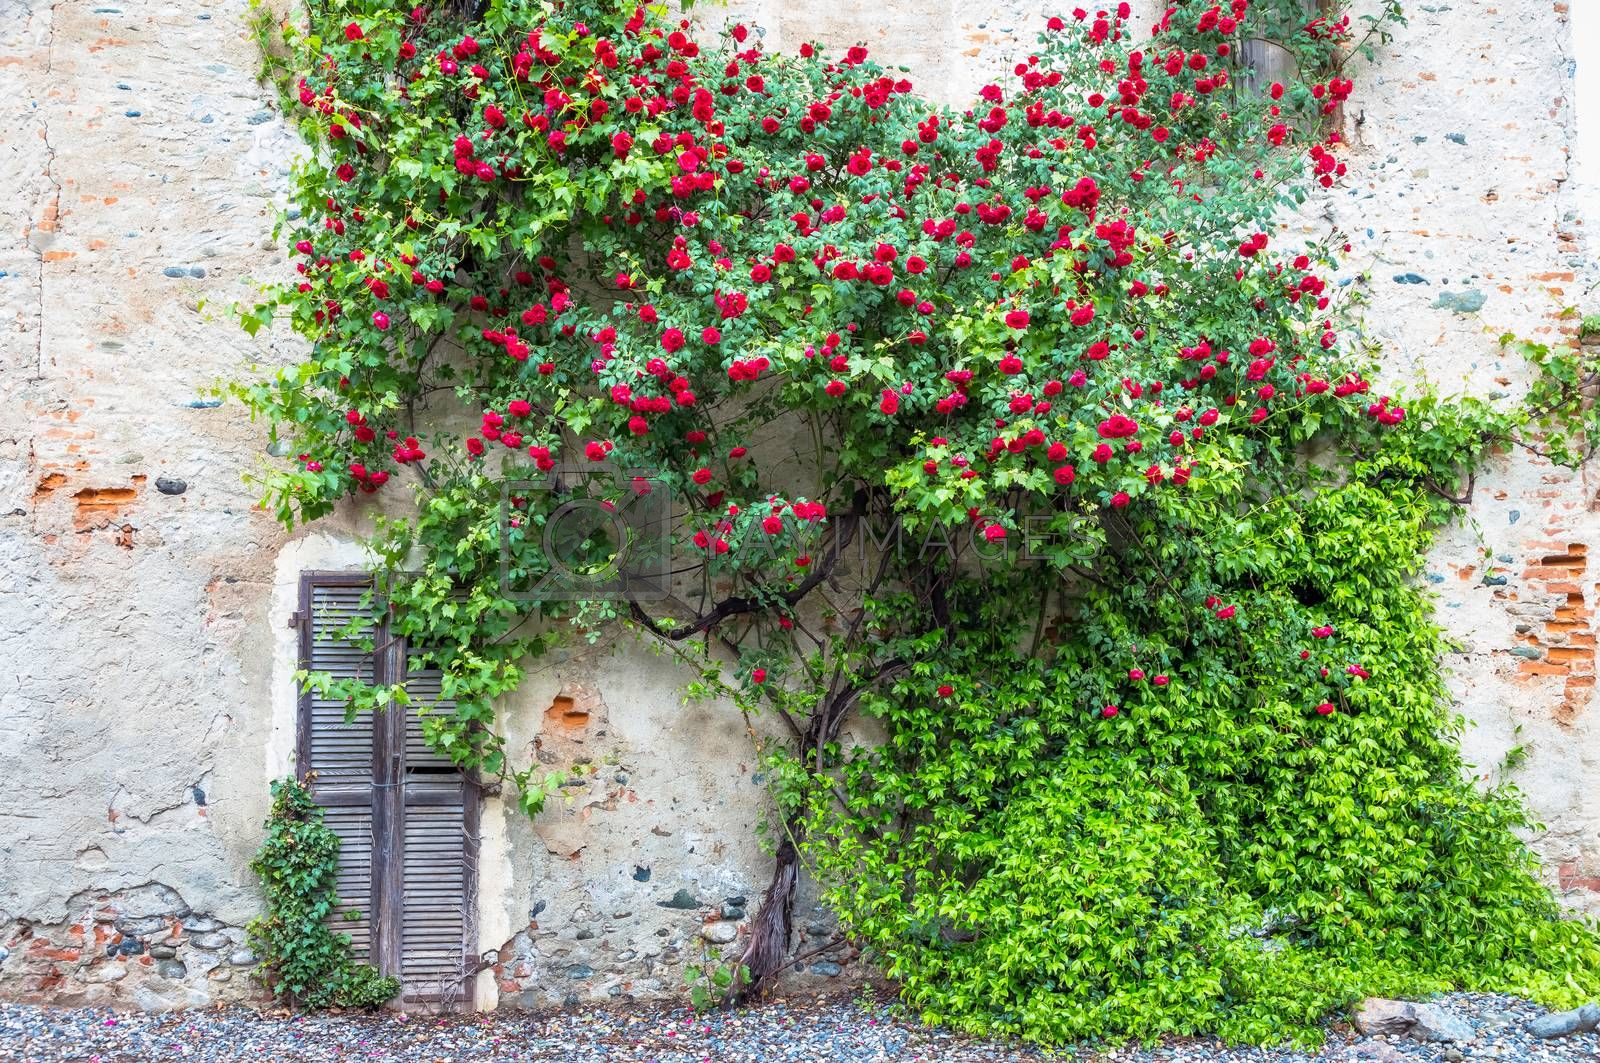 Romantic antique roses during summer season. The location is grungy and vintage in north Italy.